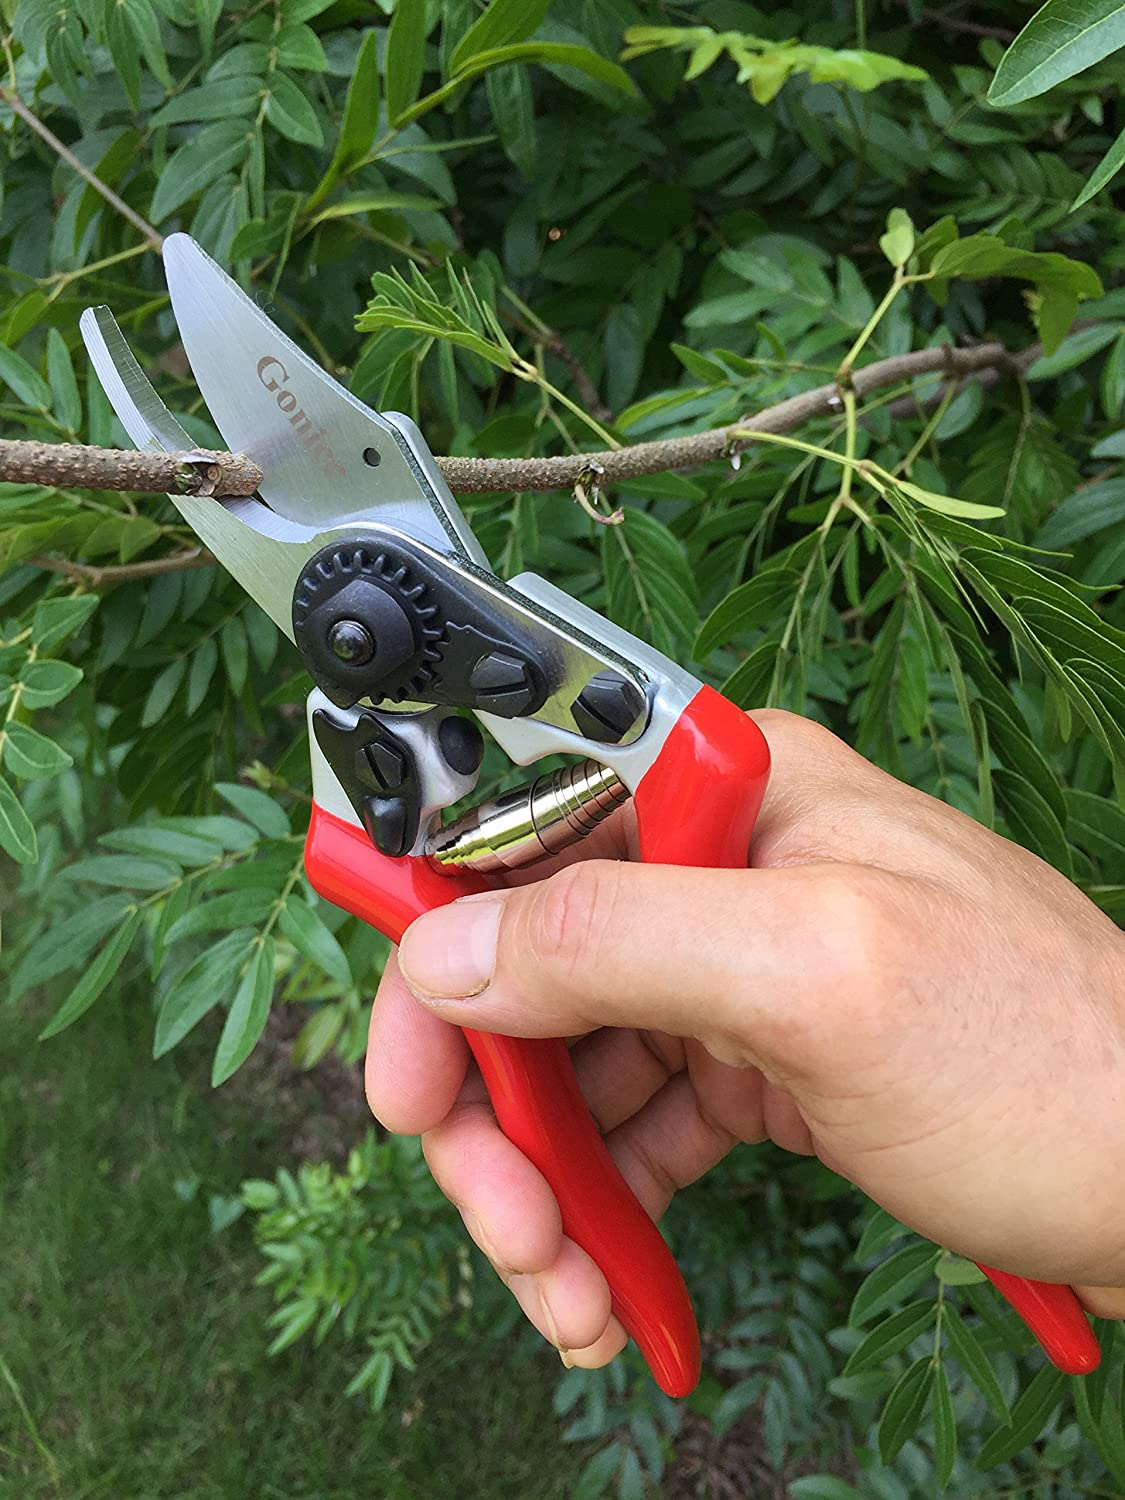 Gonicc Pruning Shears For Smaller Hands